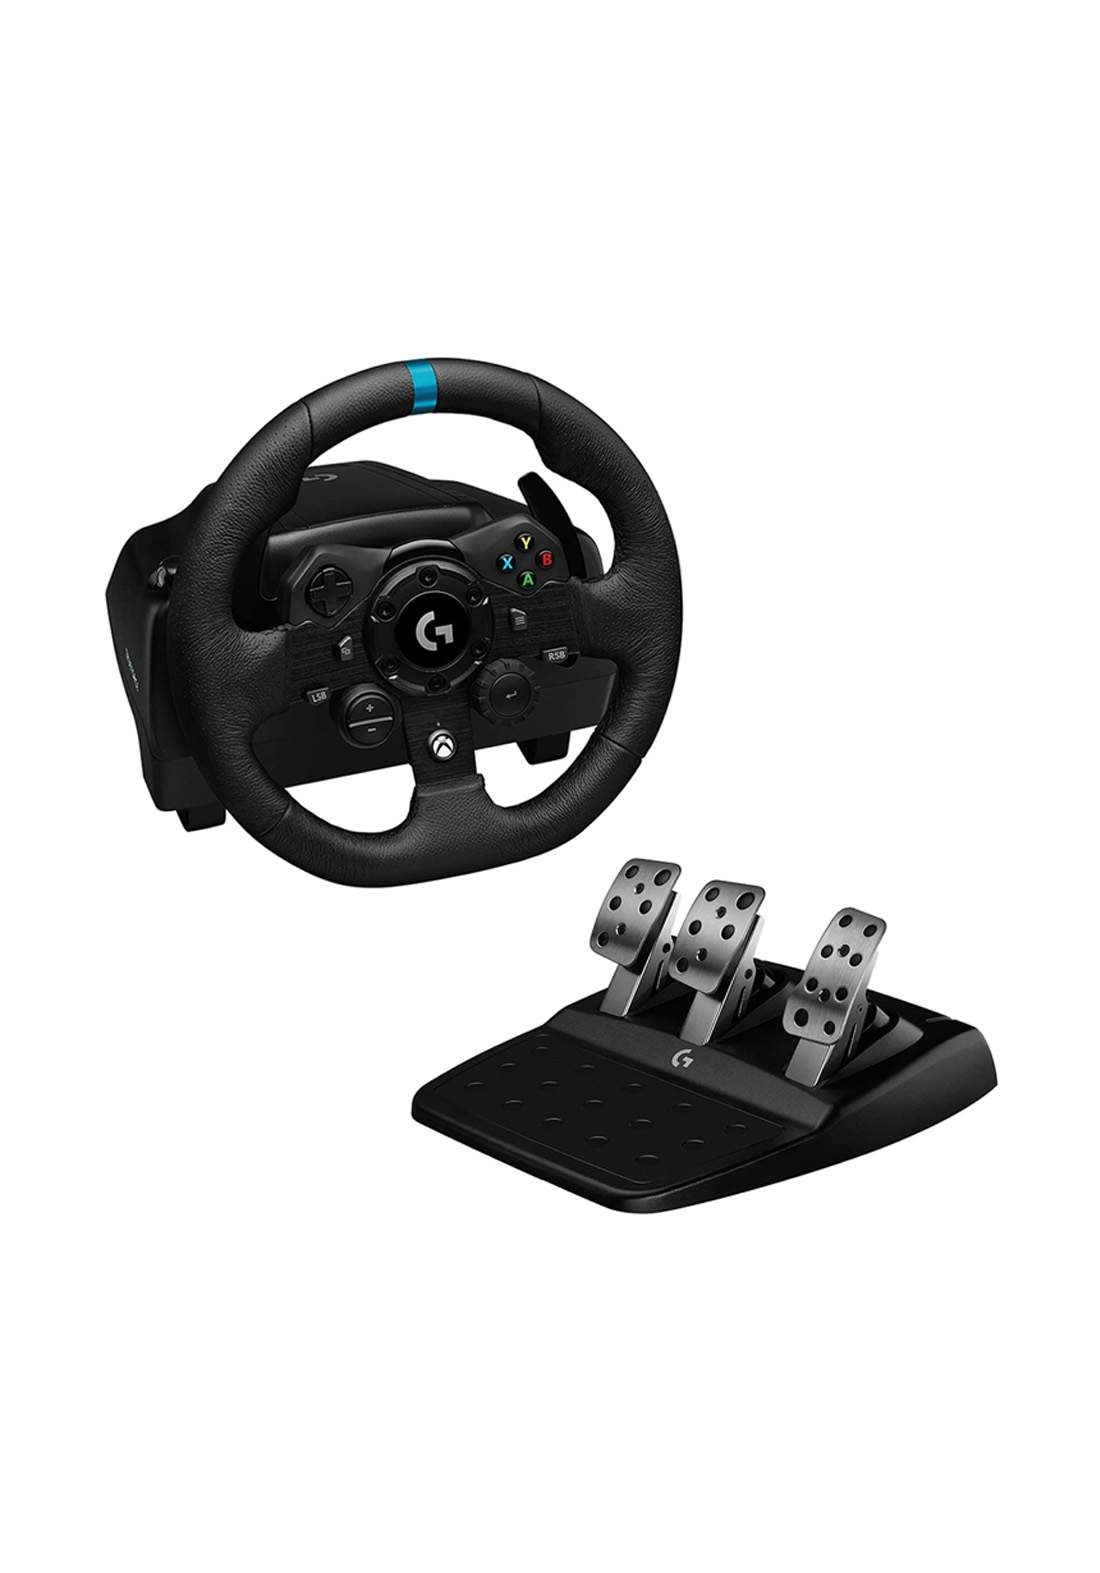 Logitech G923 Racing Wheel and Pedals for Xbox - Black